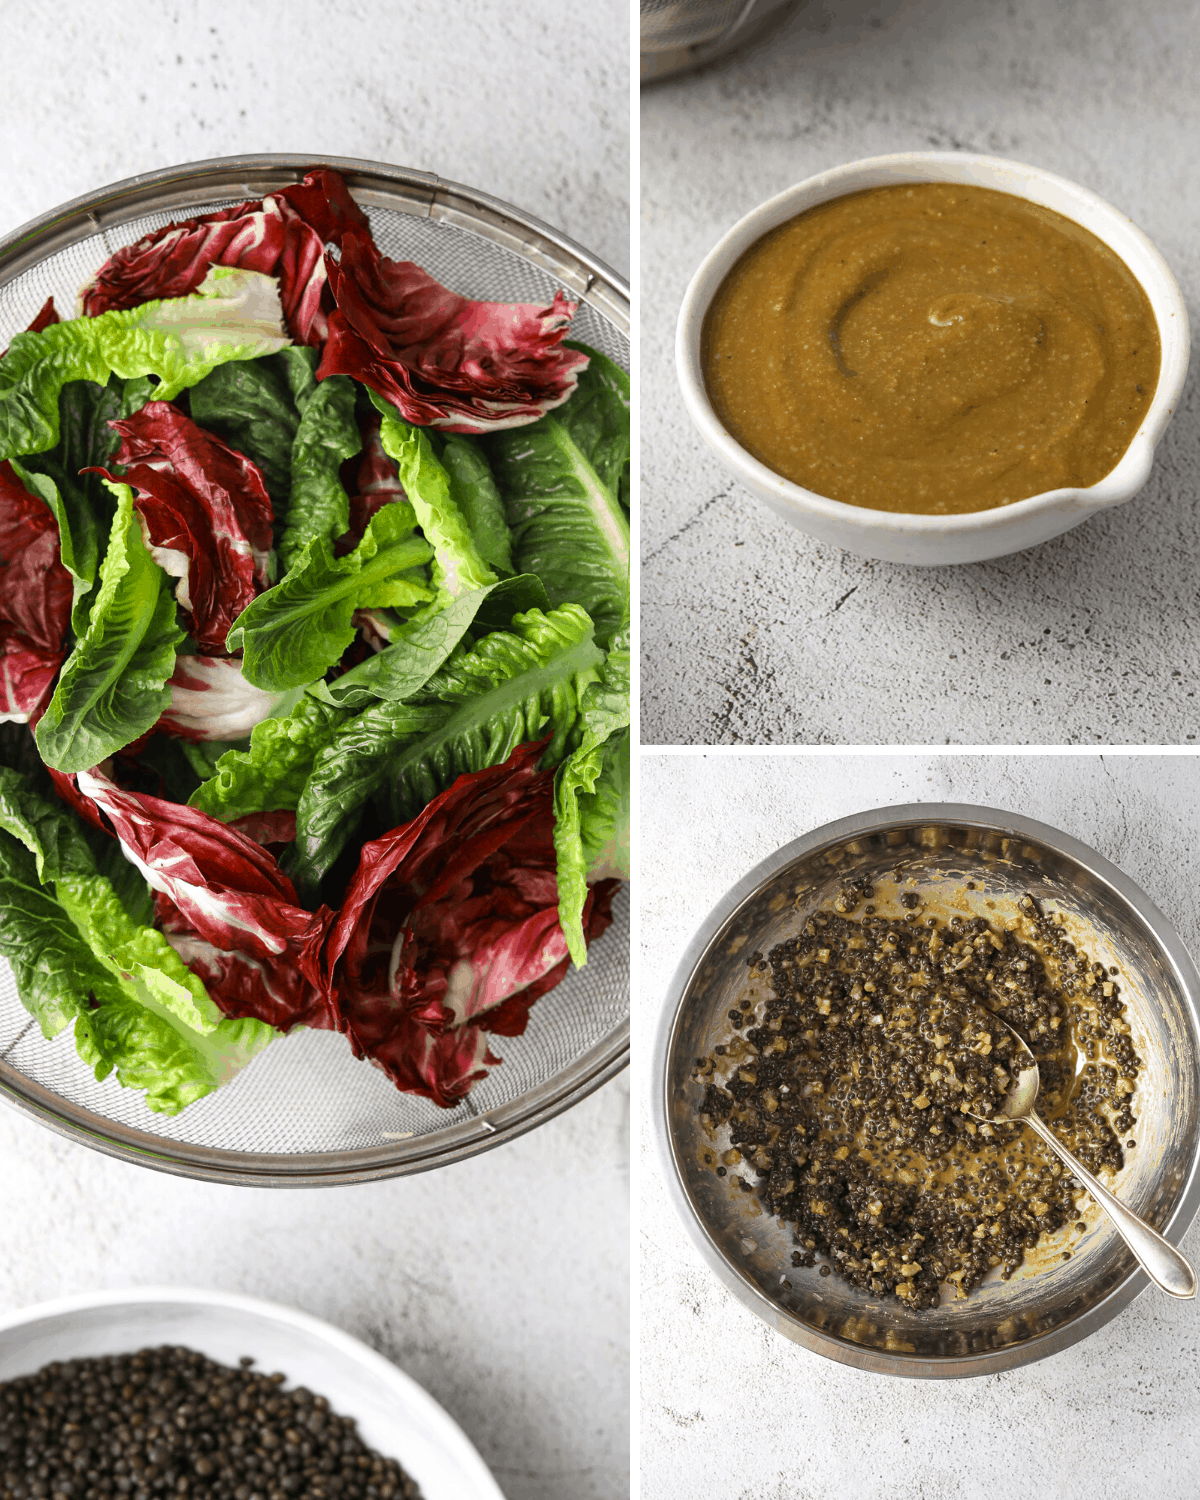 a collage of recipe steps, lettuce in a colander, a bowl of vinaigrette dressing and a bowl of lentils mixed with dressing.